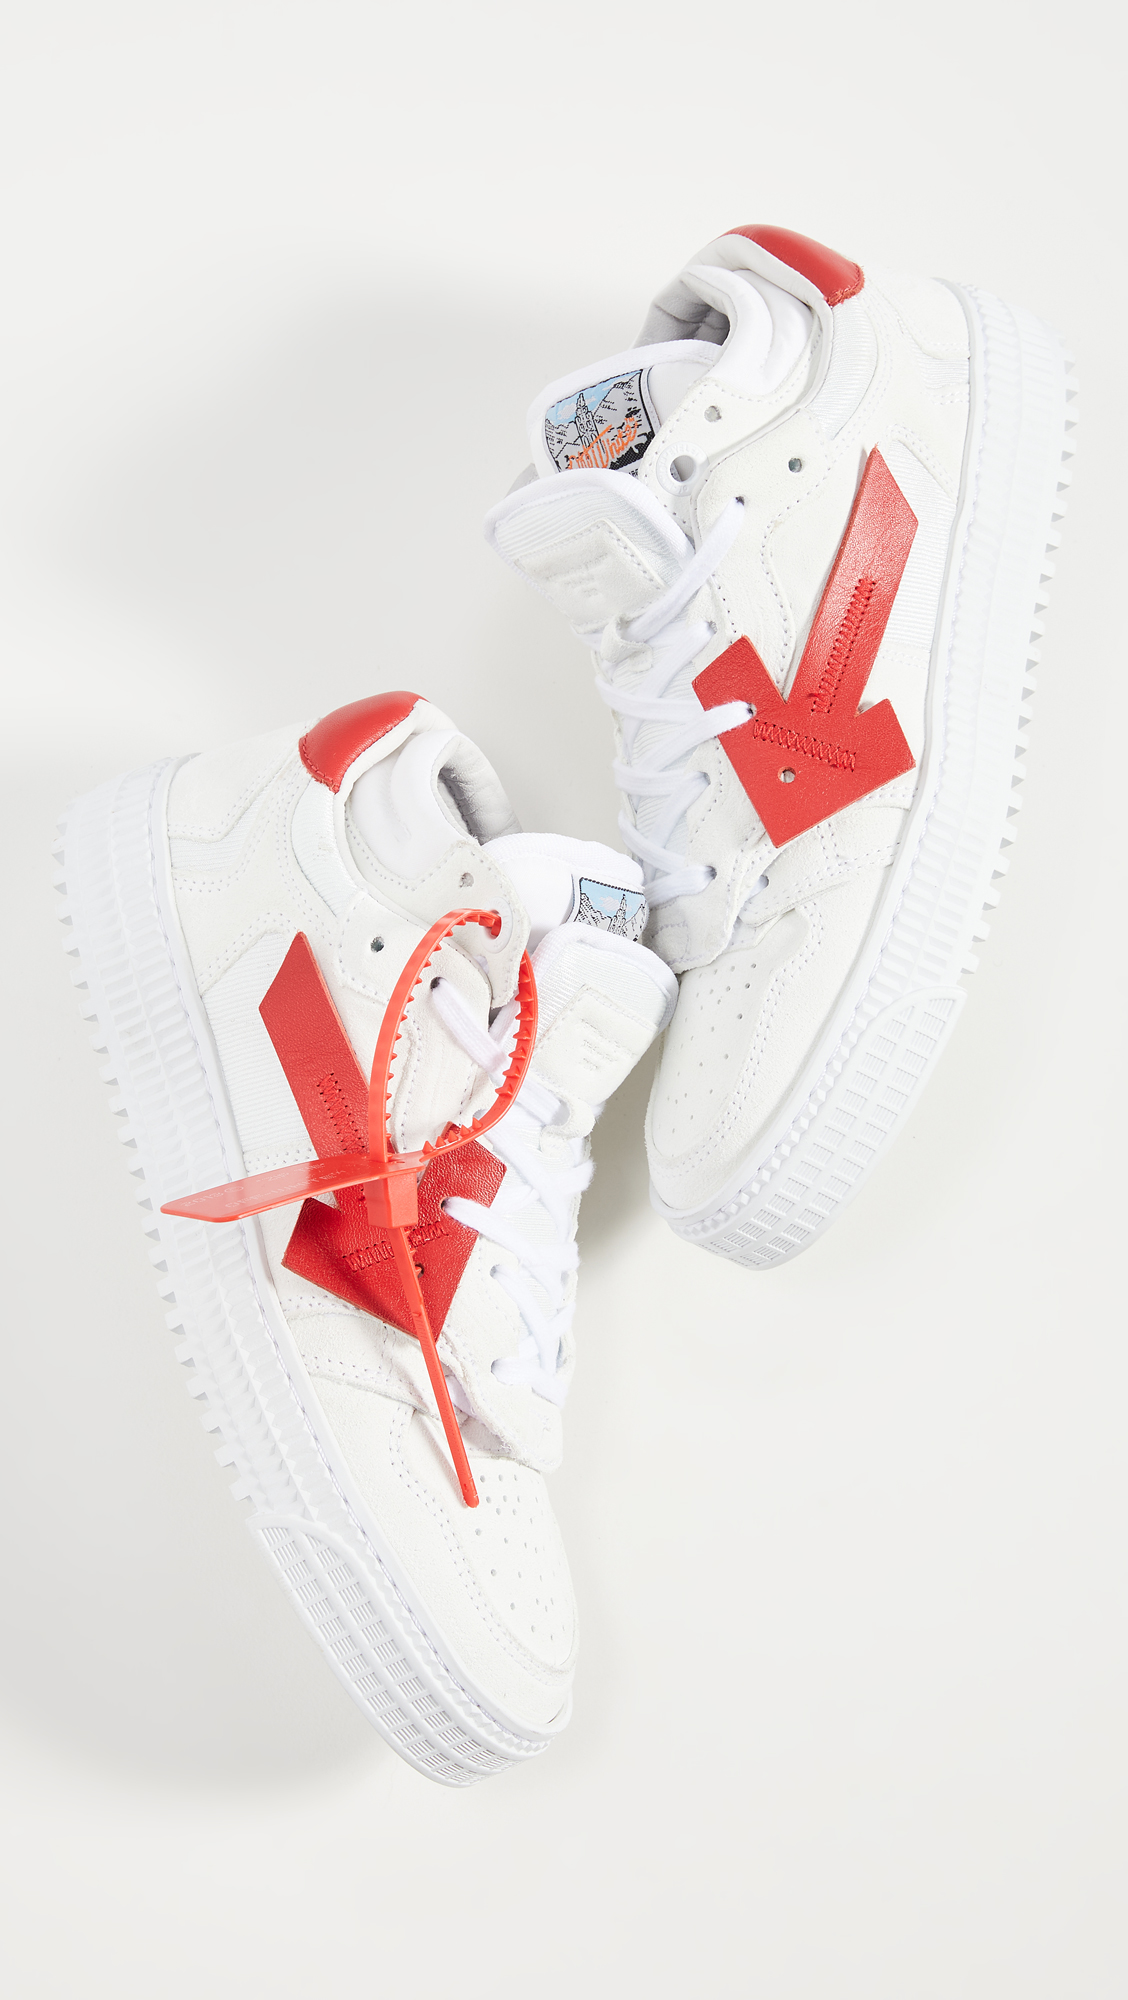 Off-White 3.0 Low Sneakers